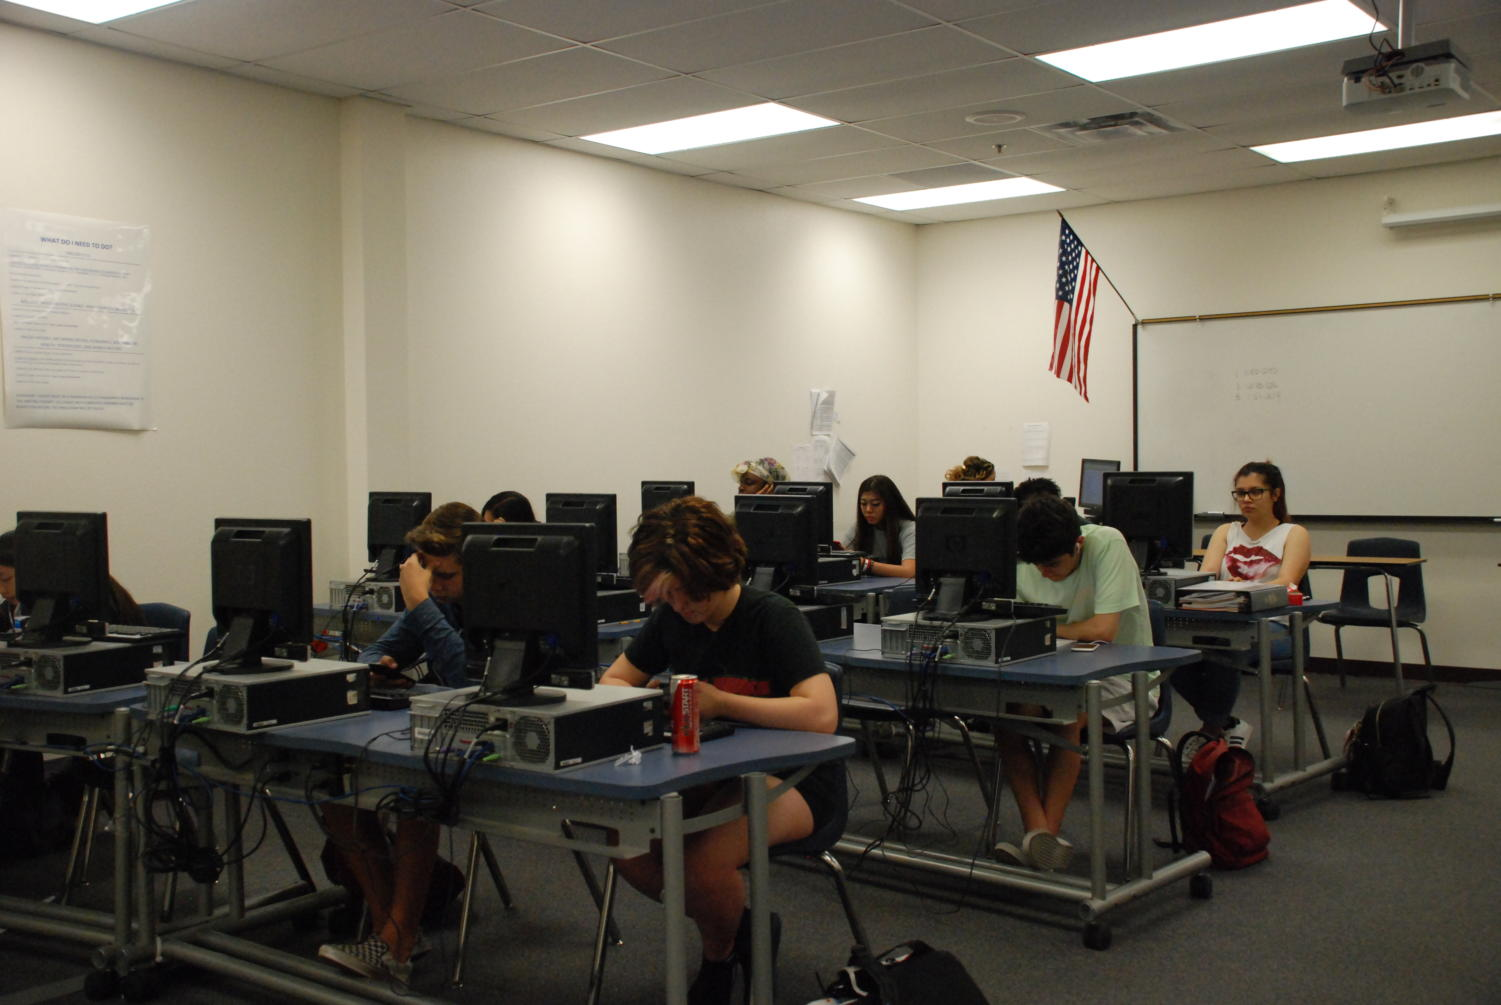 Students work diligently to complete their classes.